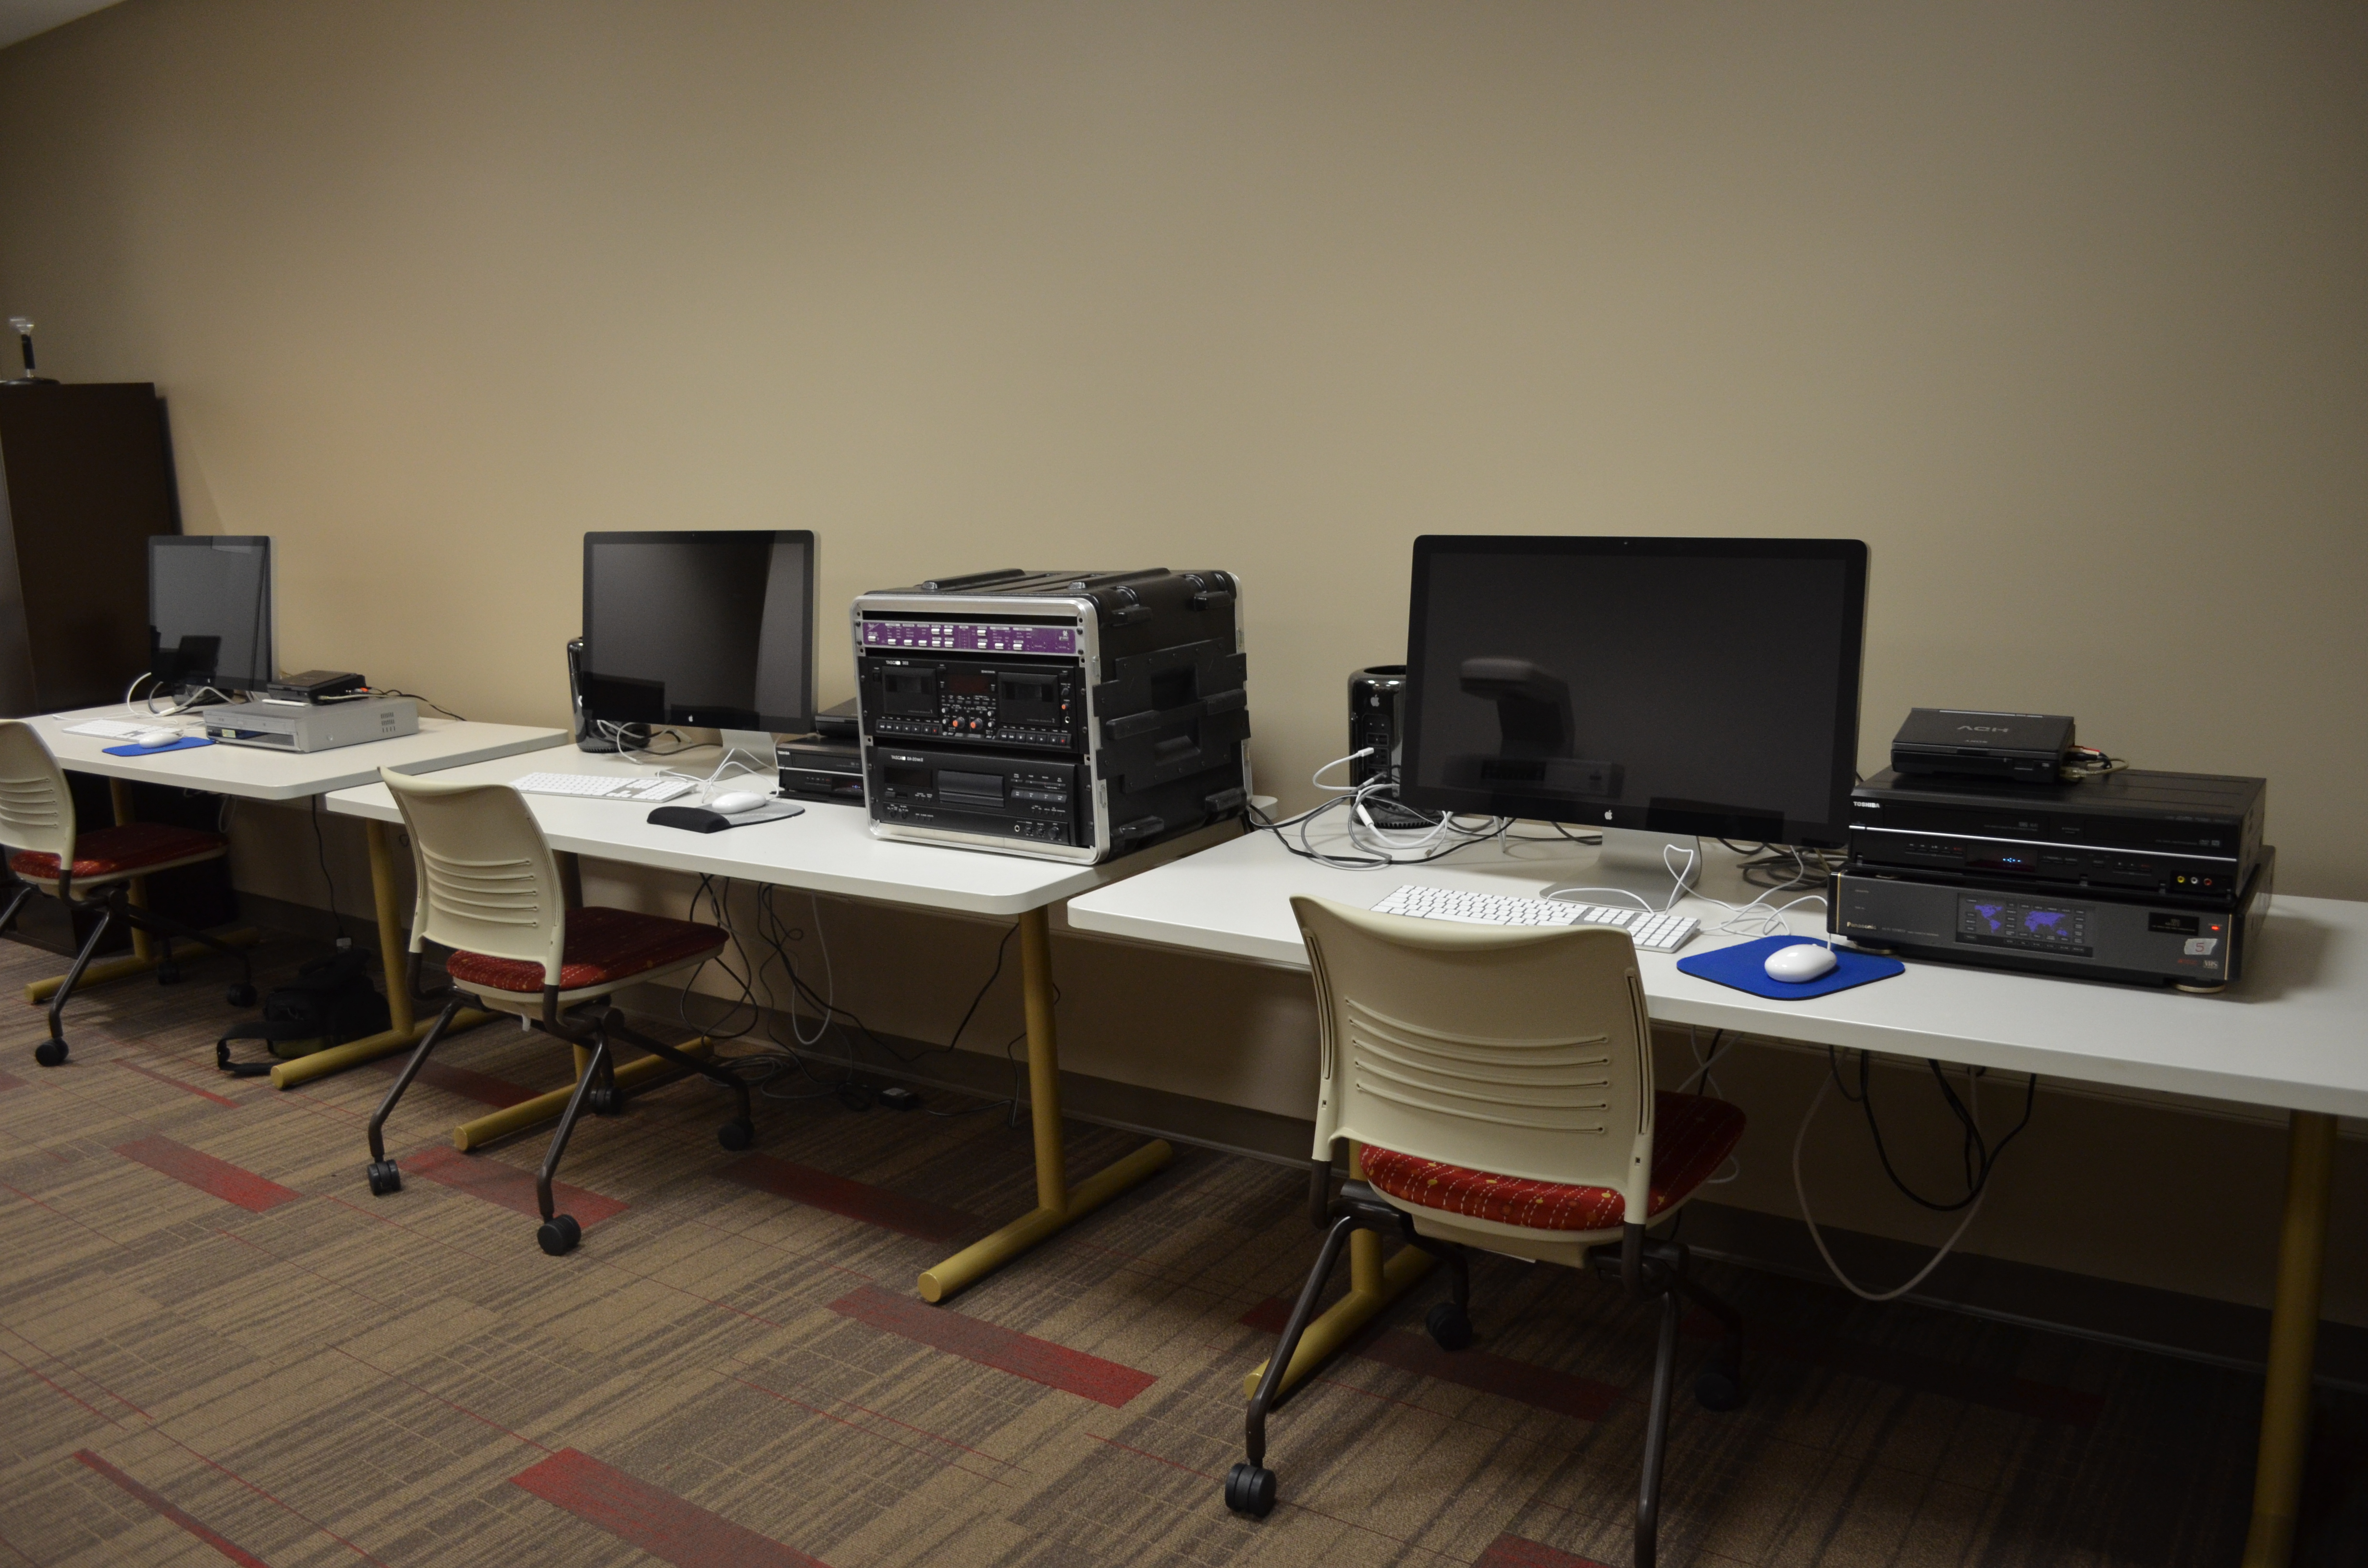 Equipment in the Secure Audio/Video Digitization Lab